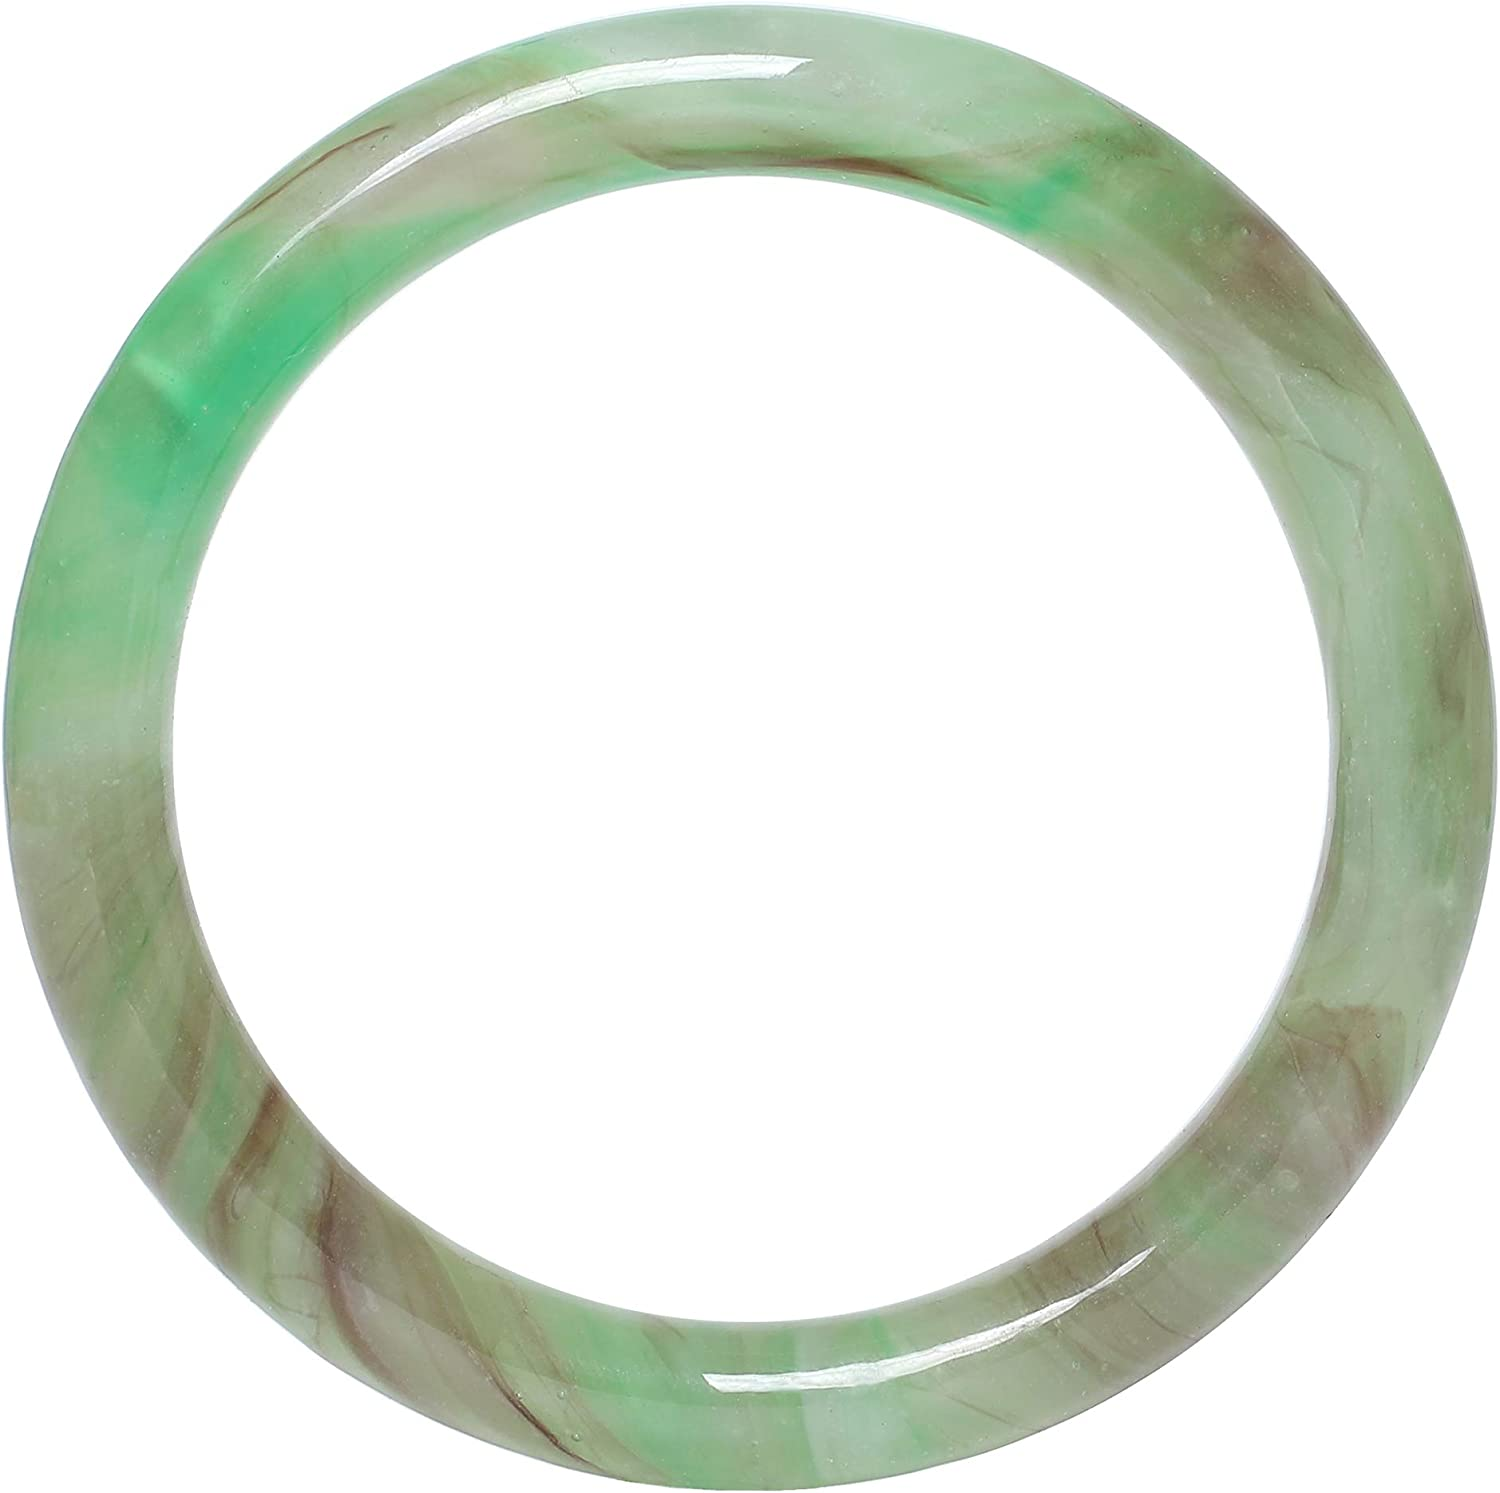 Antiquity Sian Art Green Luck Bangle for Over item handling ☆ Super sale period limited and Bracelet Women Girl